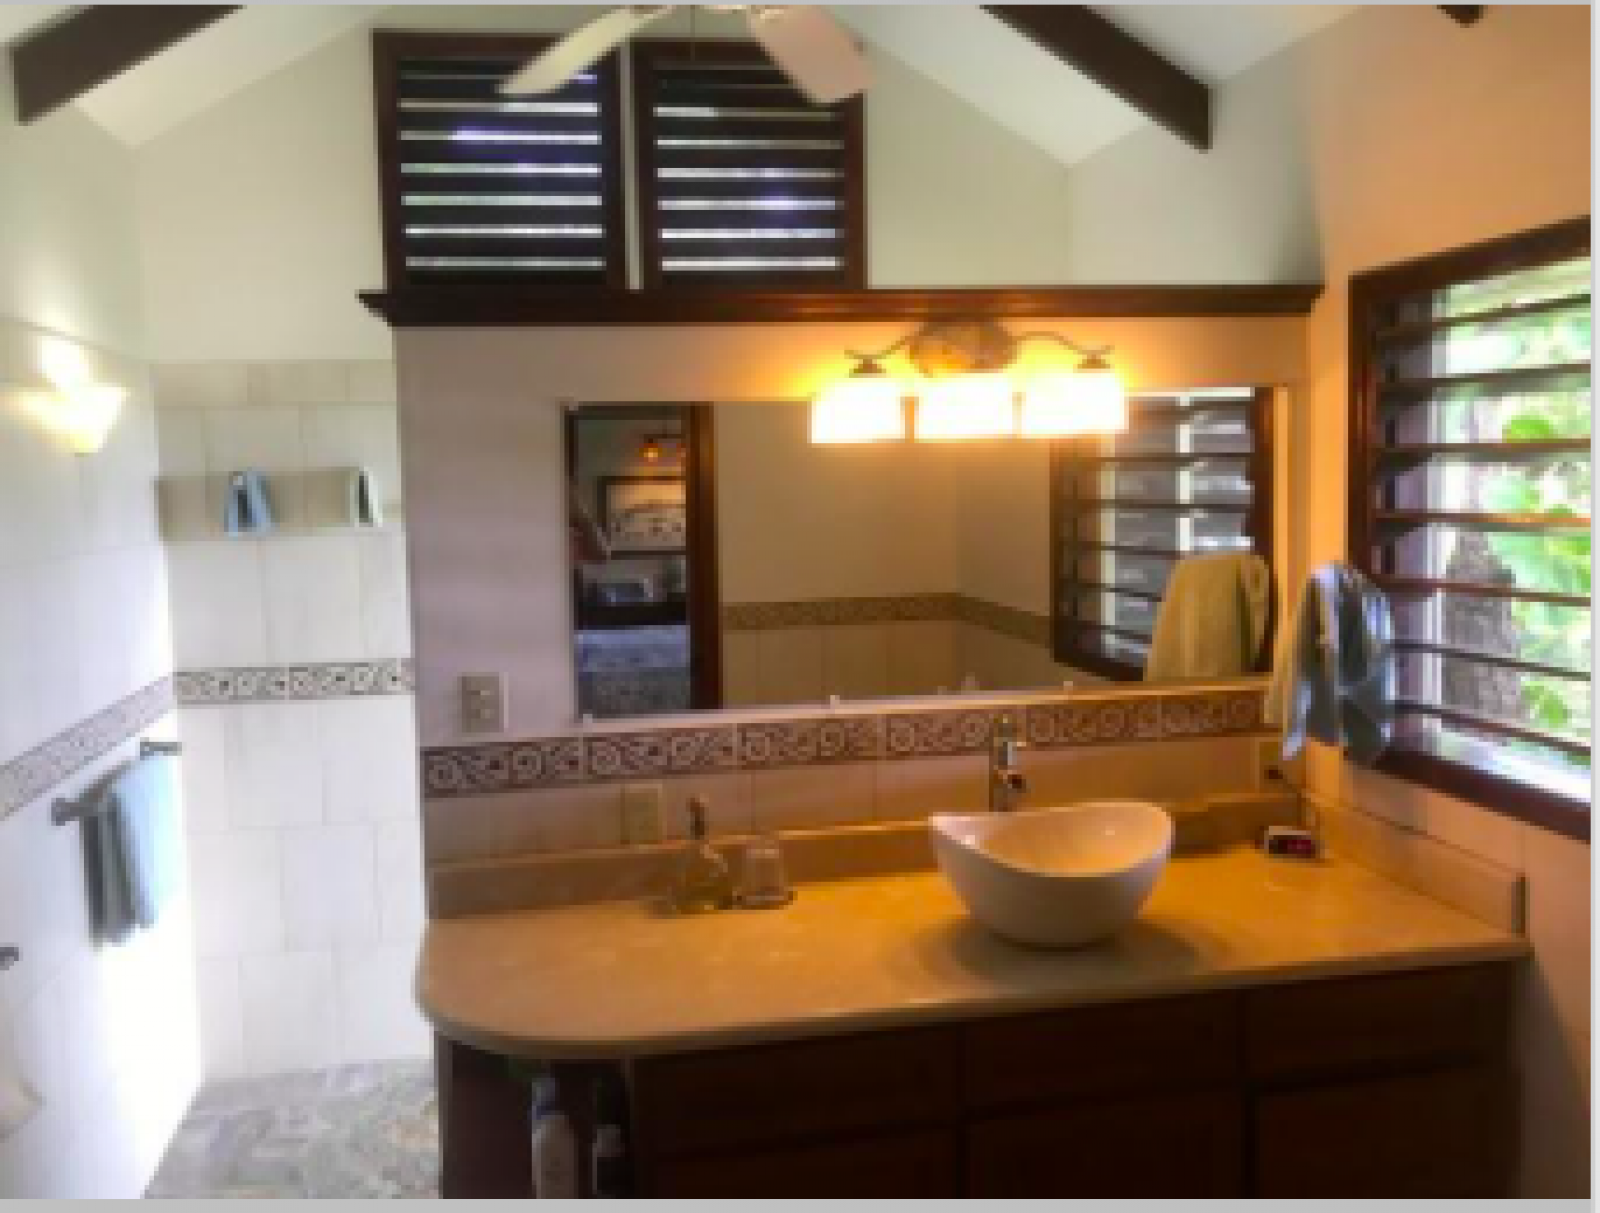 Spacious bathroom with great views and ventilation.